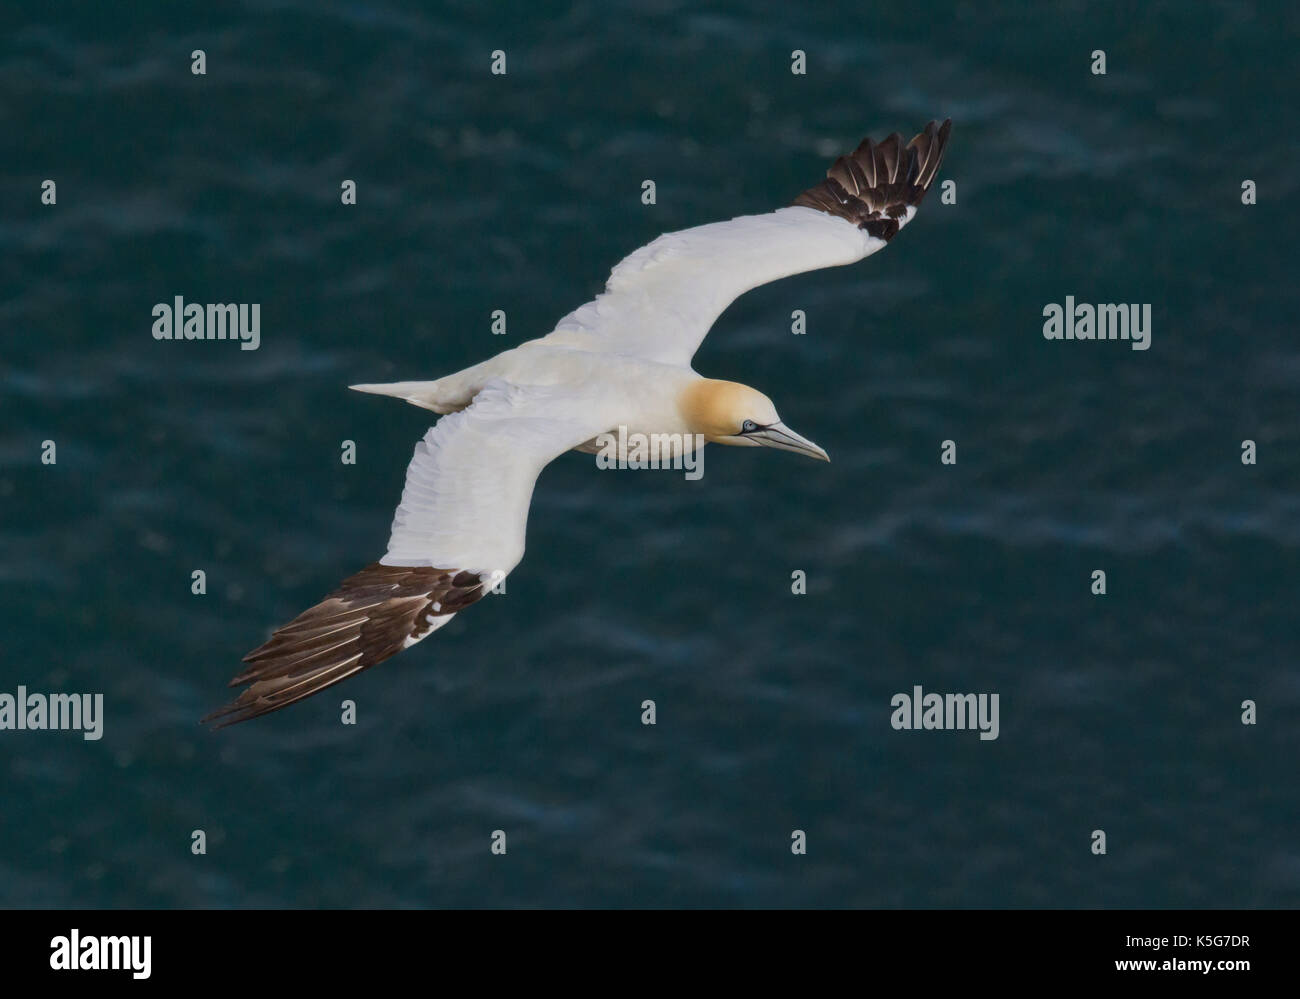 Adult Gannet flying over blue sea with wings extended - Stock Image